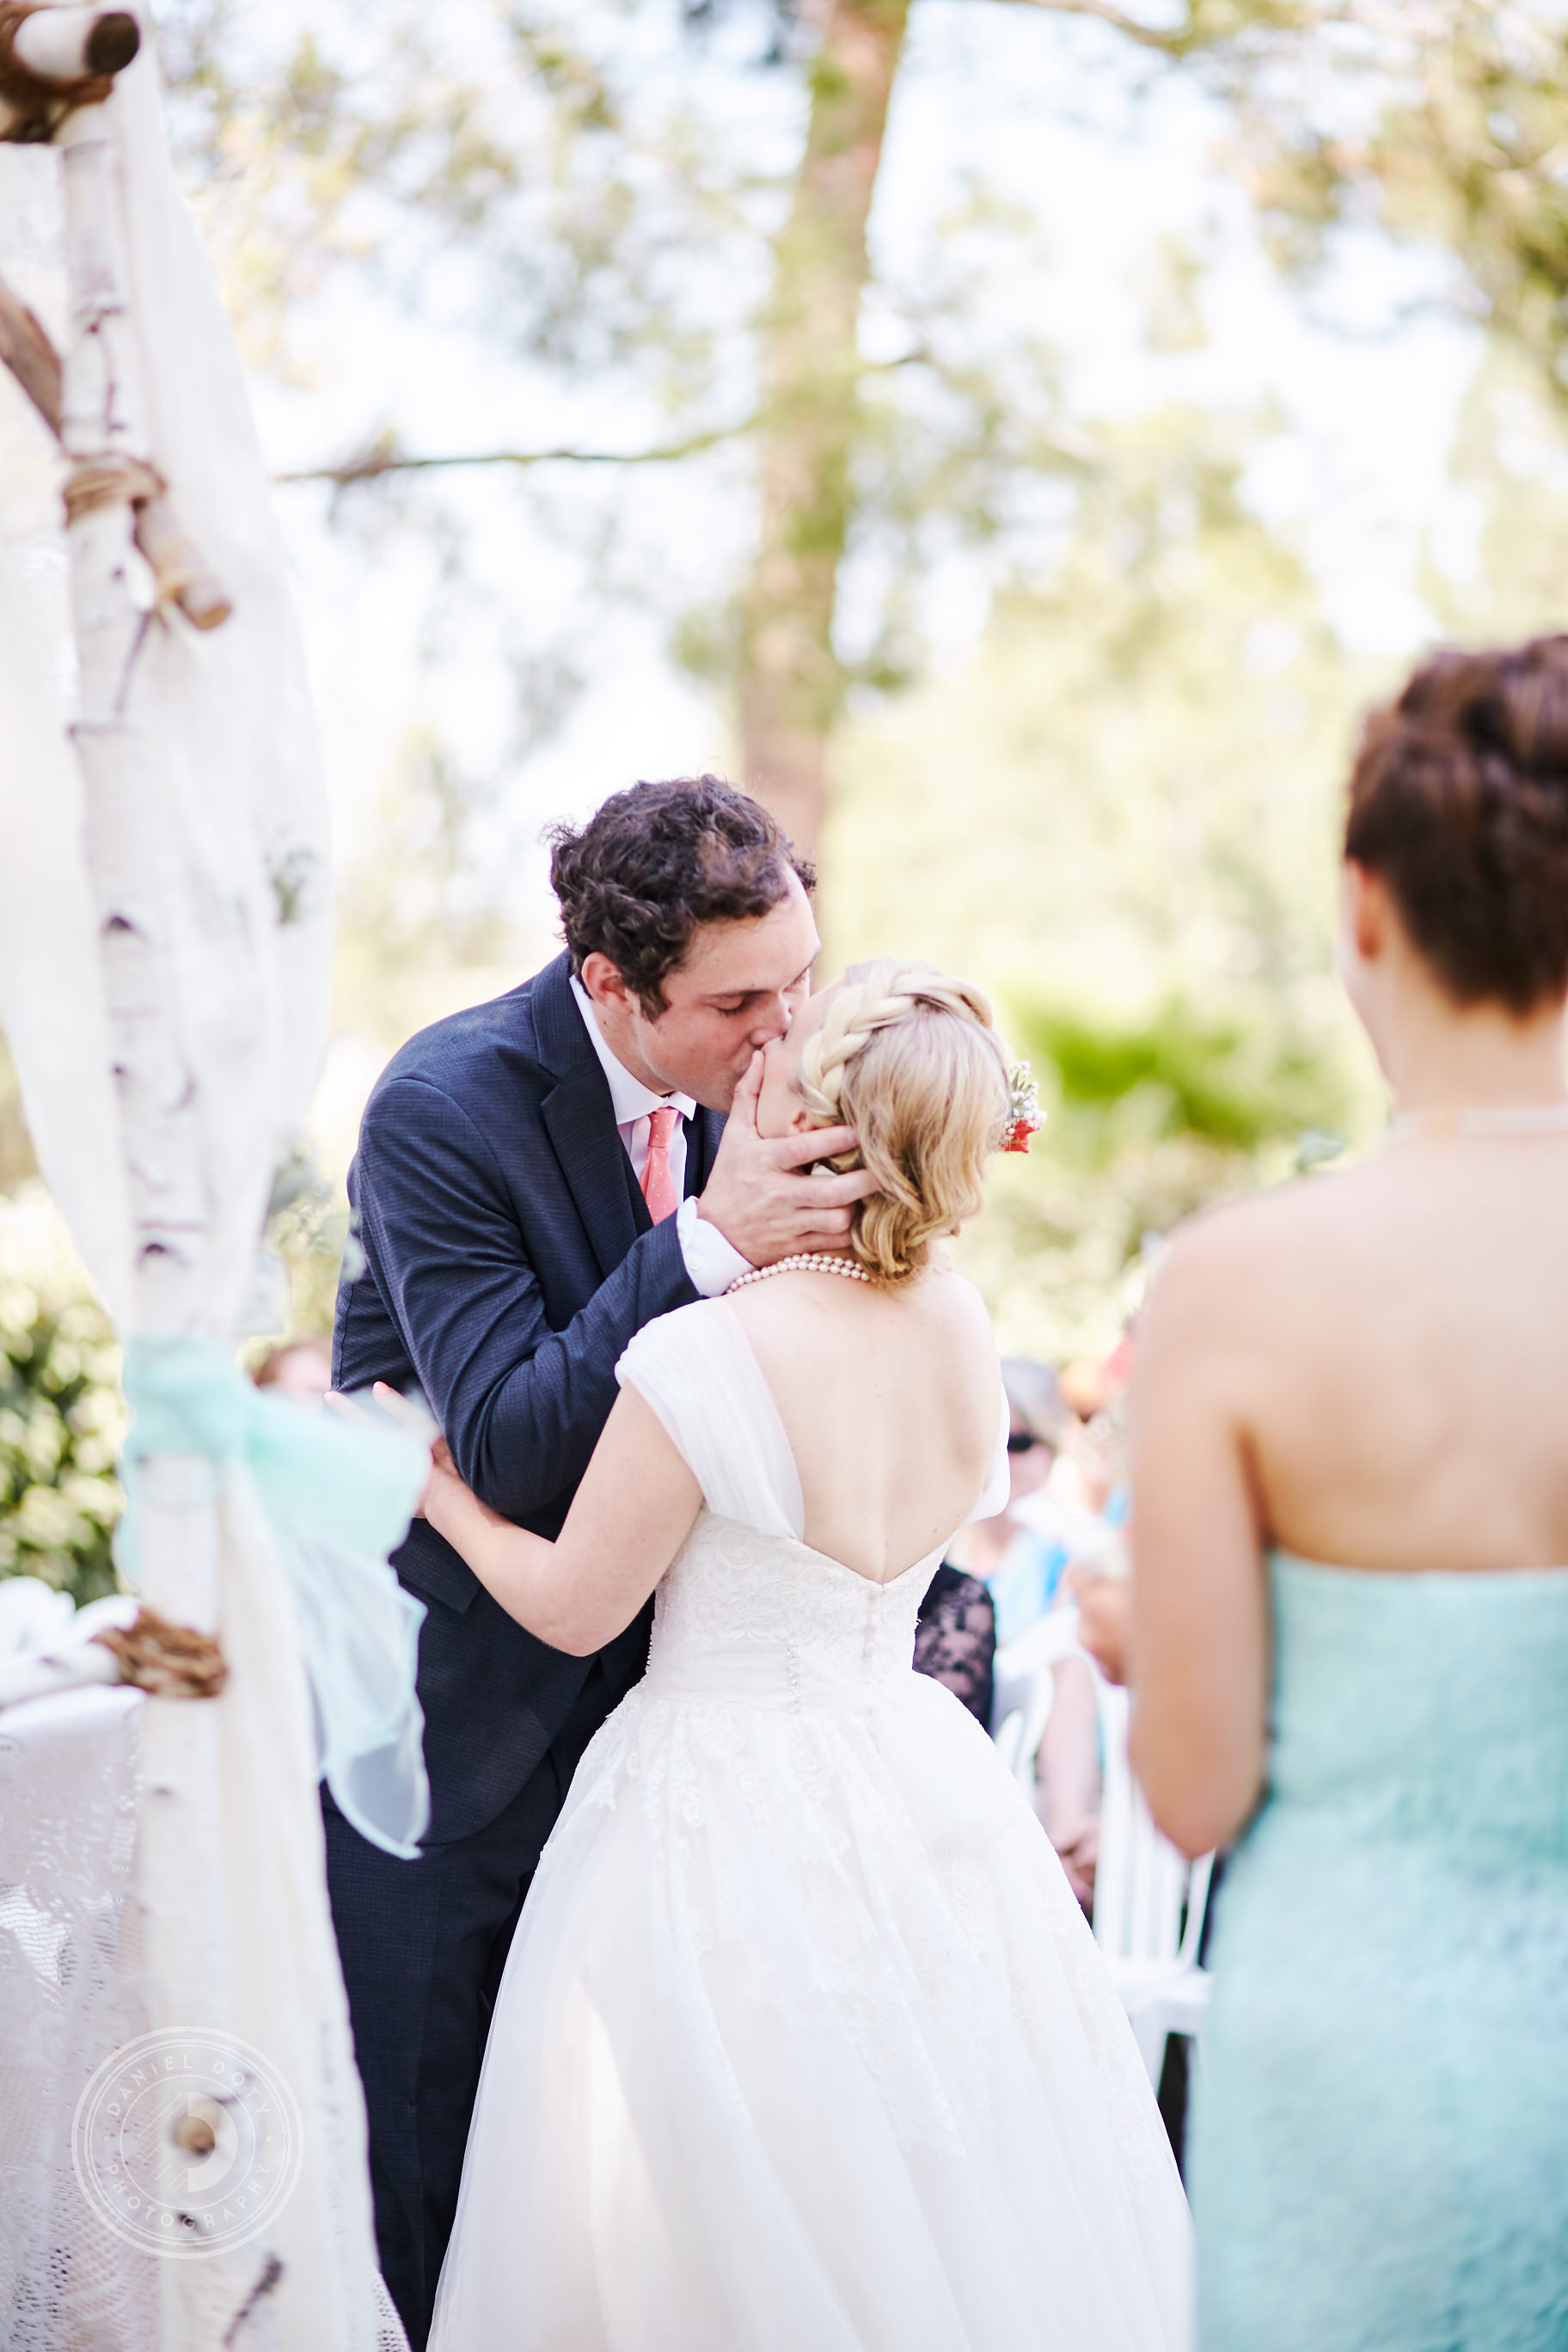 Daniel Doty Photography Erin Colin SoCal Wedding Photographer Strathearn 144.jpg